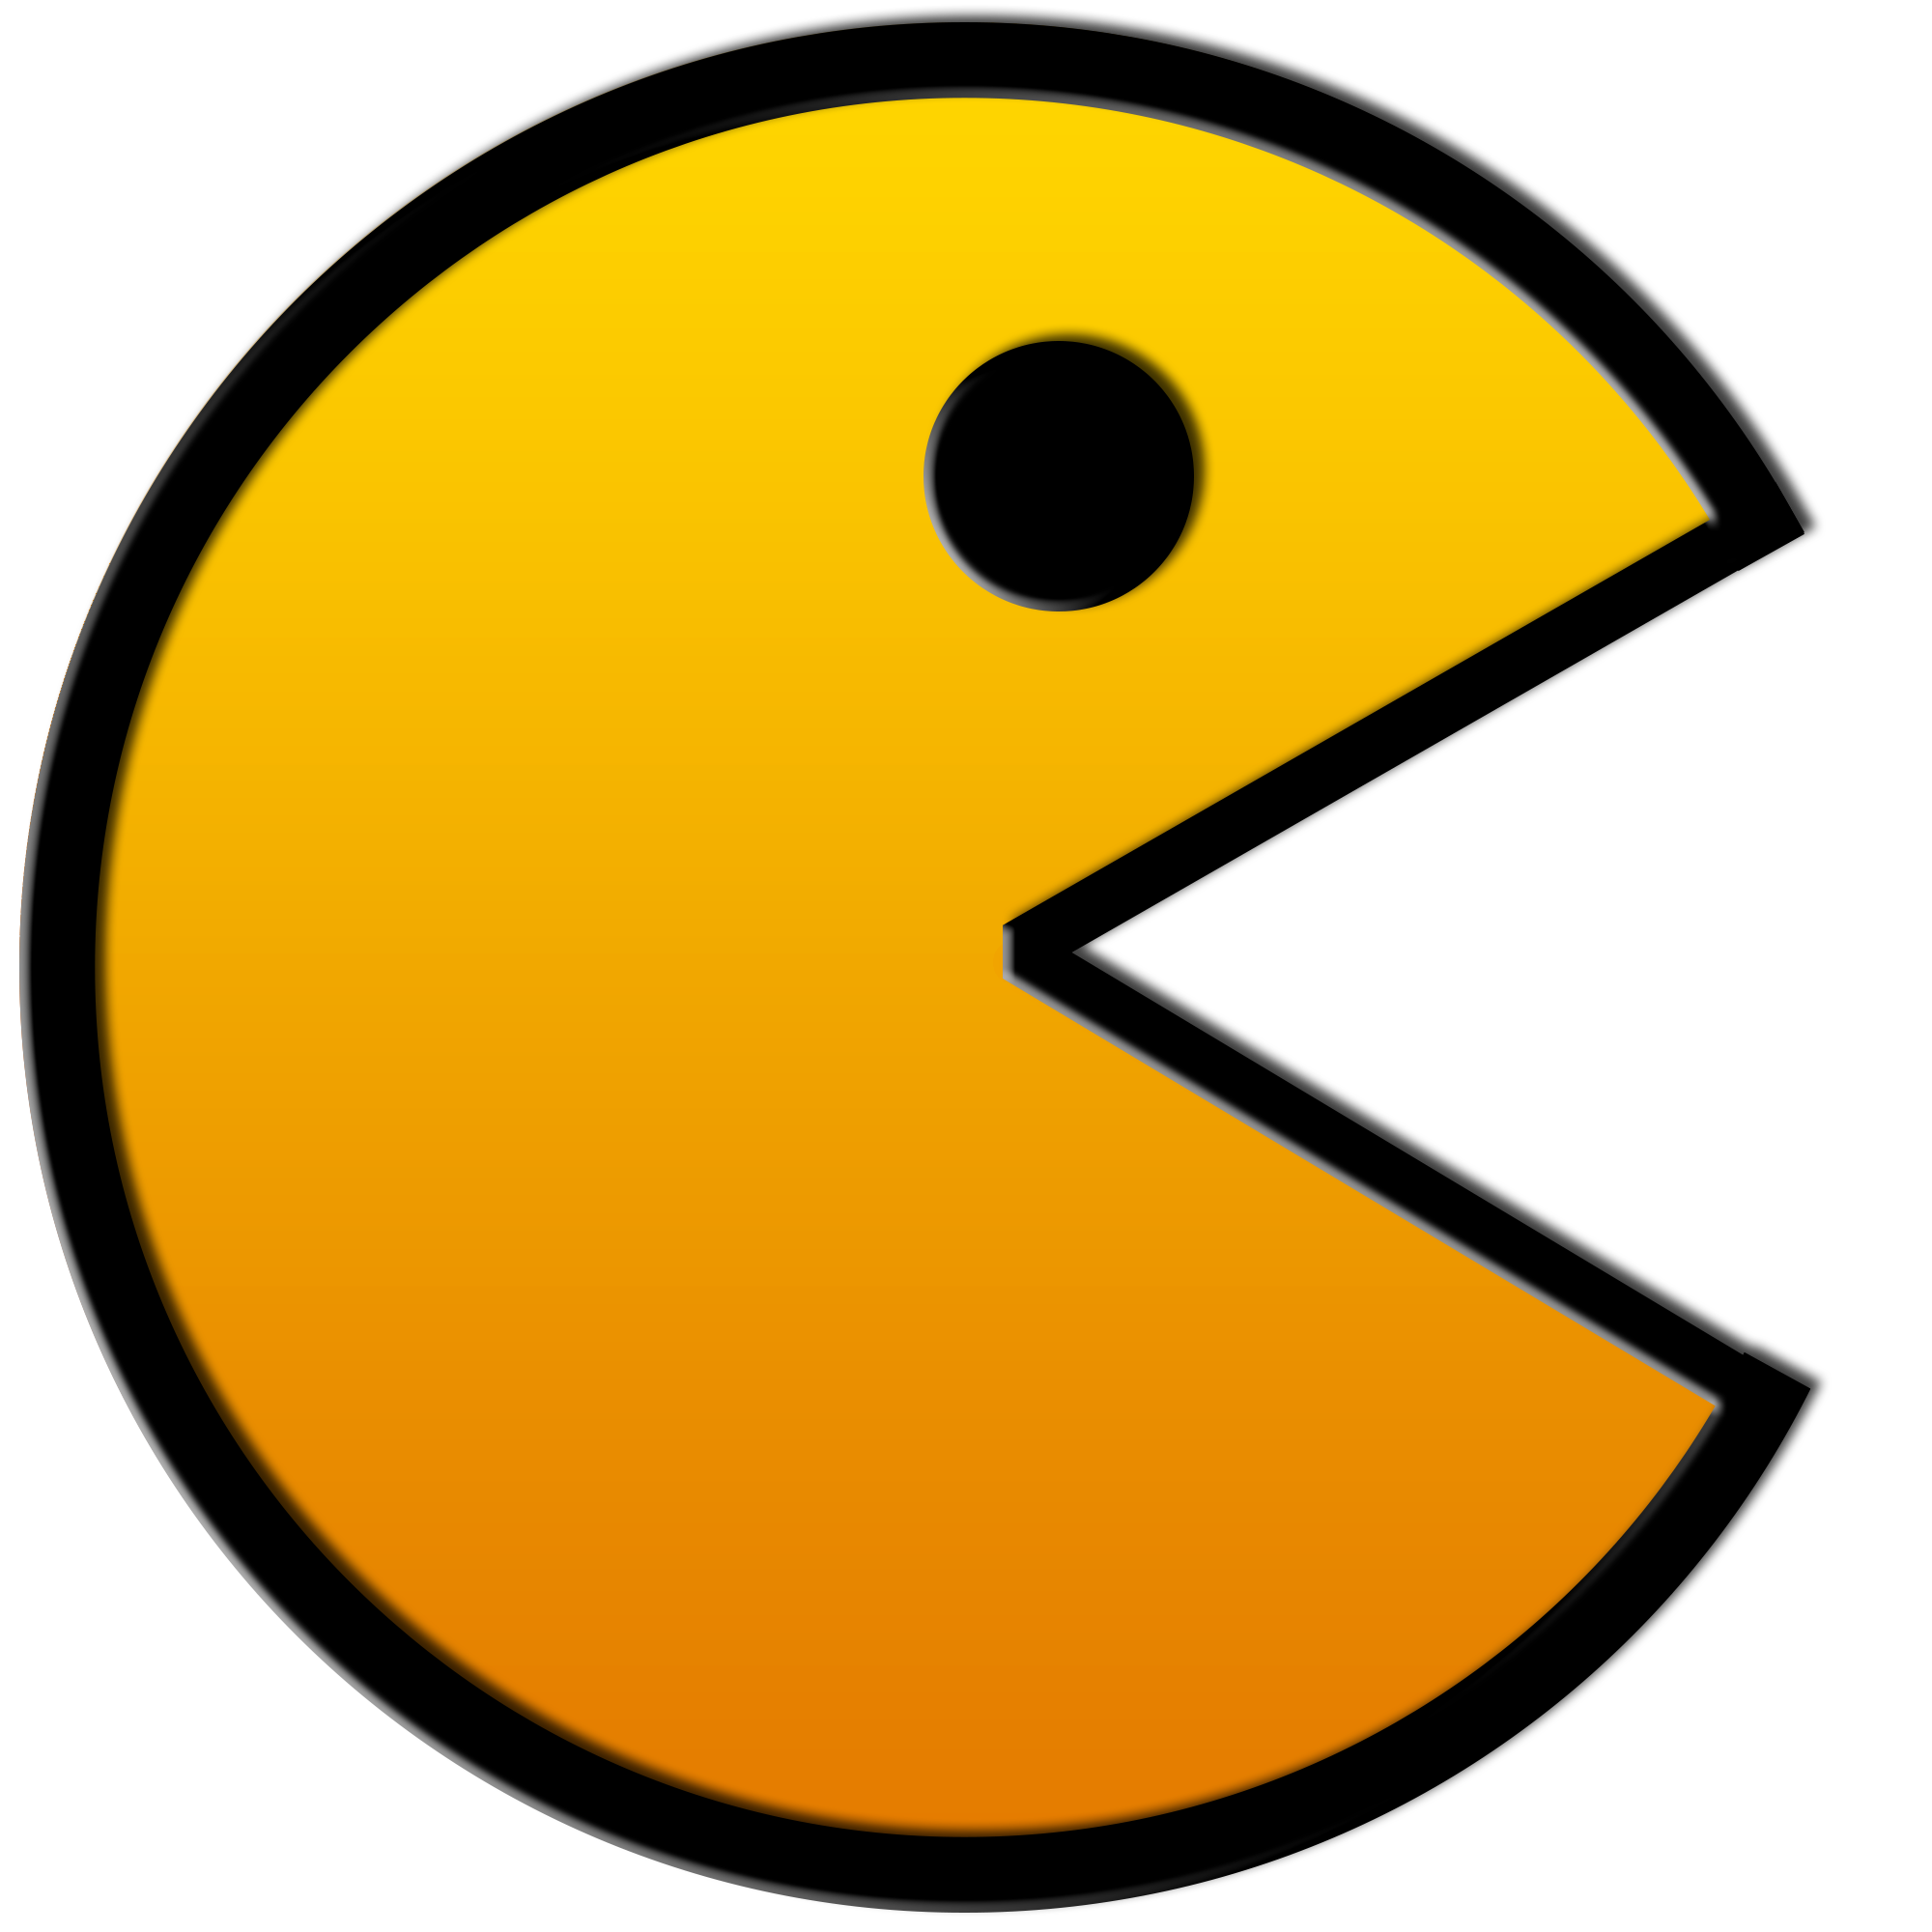 1000+ images about Pacman on Pinterest | Pac man costume, Gaming